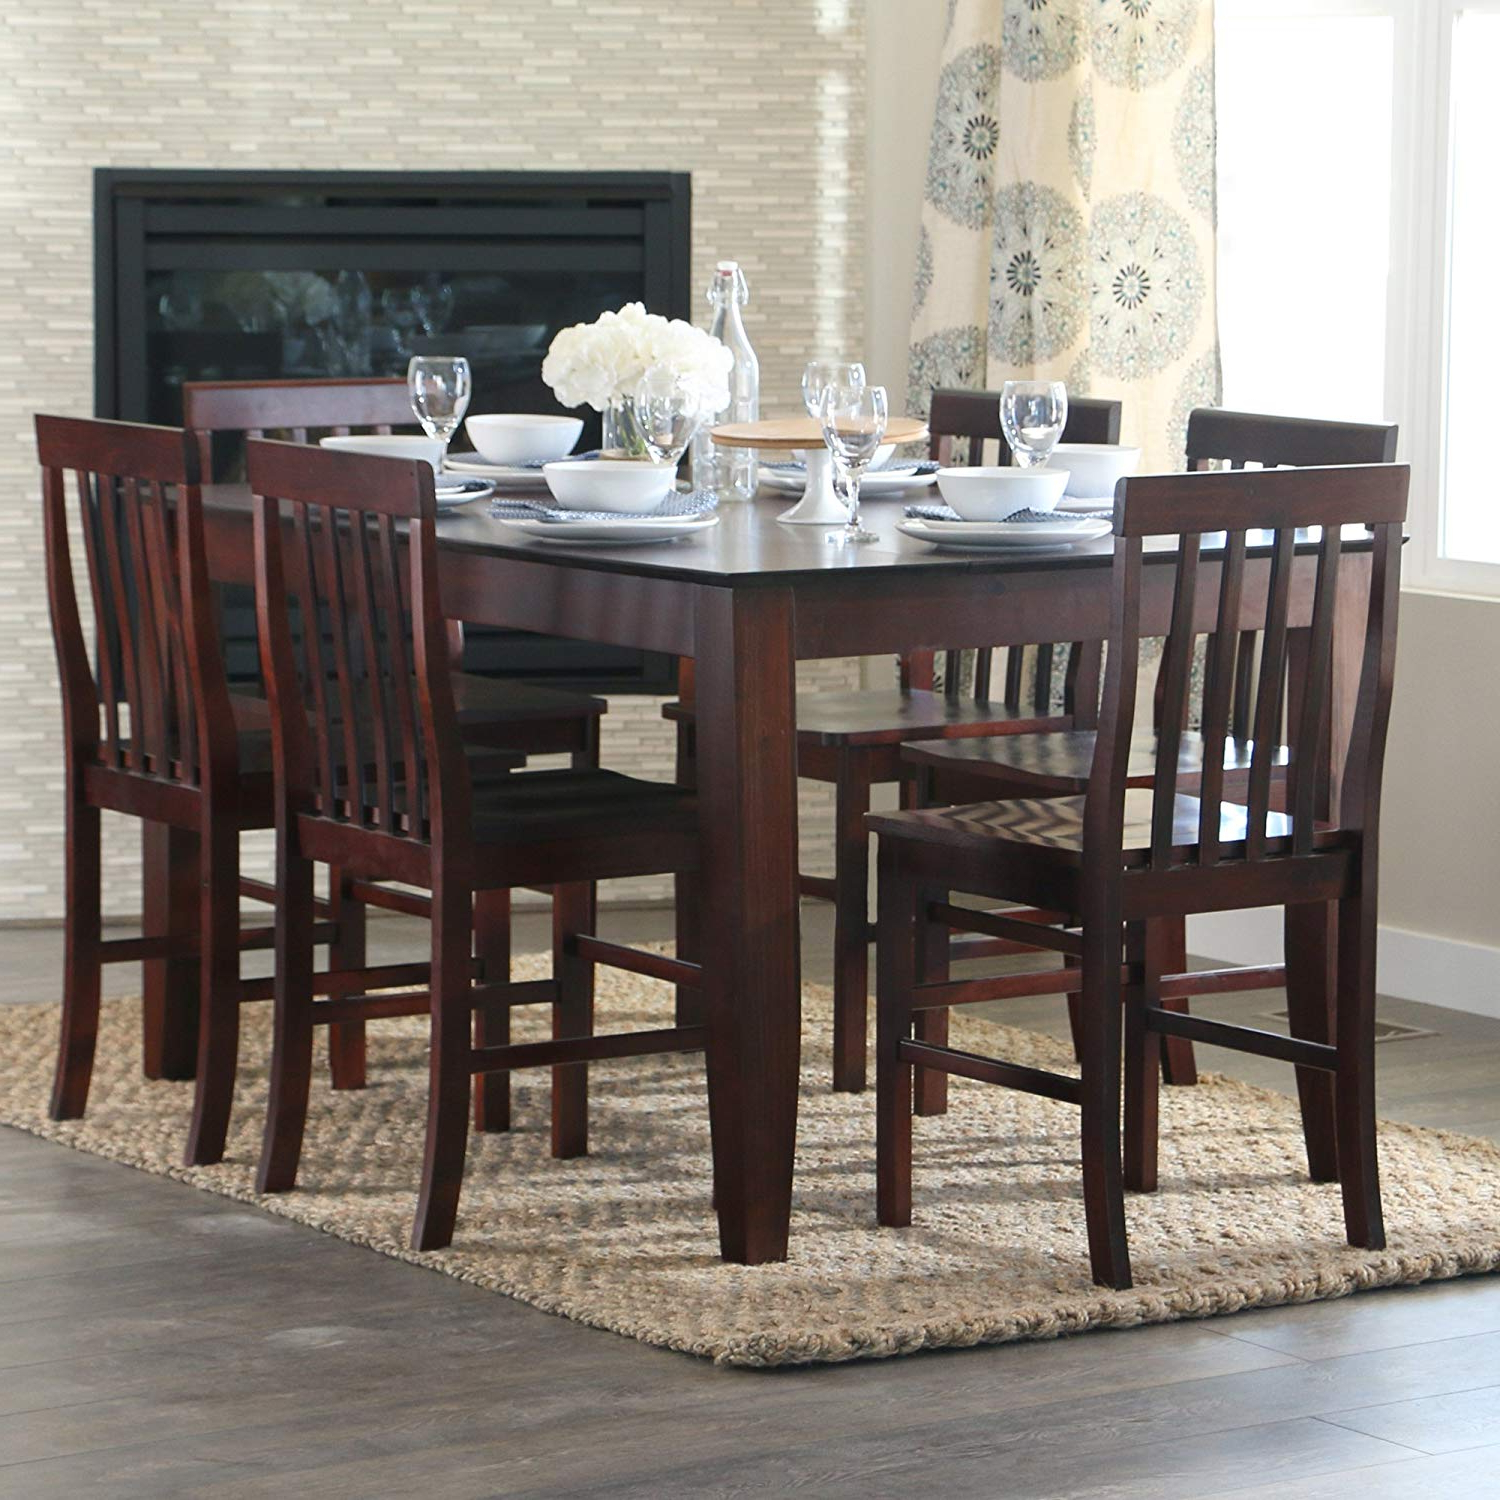 Favorite Walker Edison 7 Piece Espresso Wood Dining Set With Hearst Oak Wood Dining Tables (View 9 of 25)